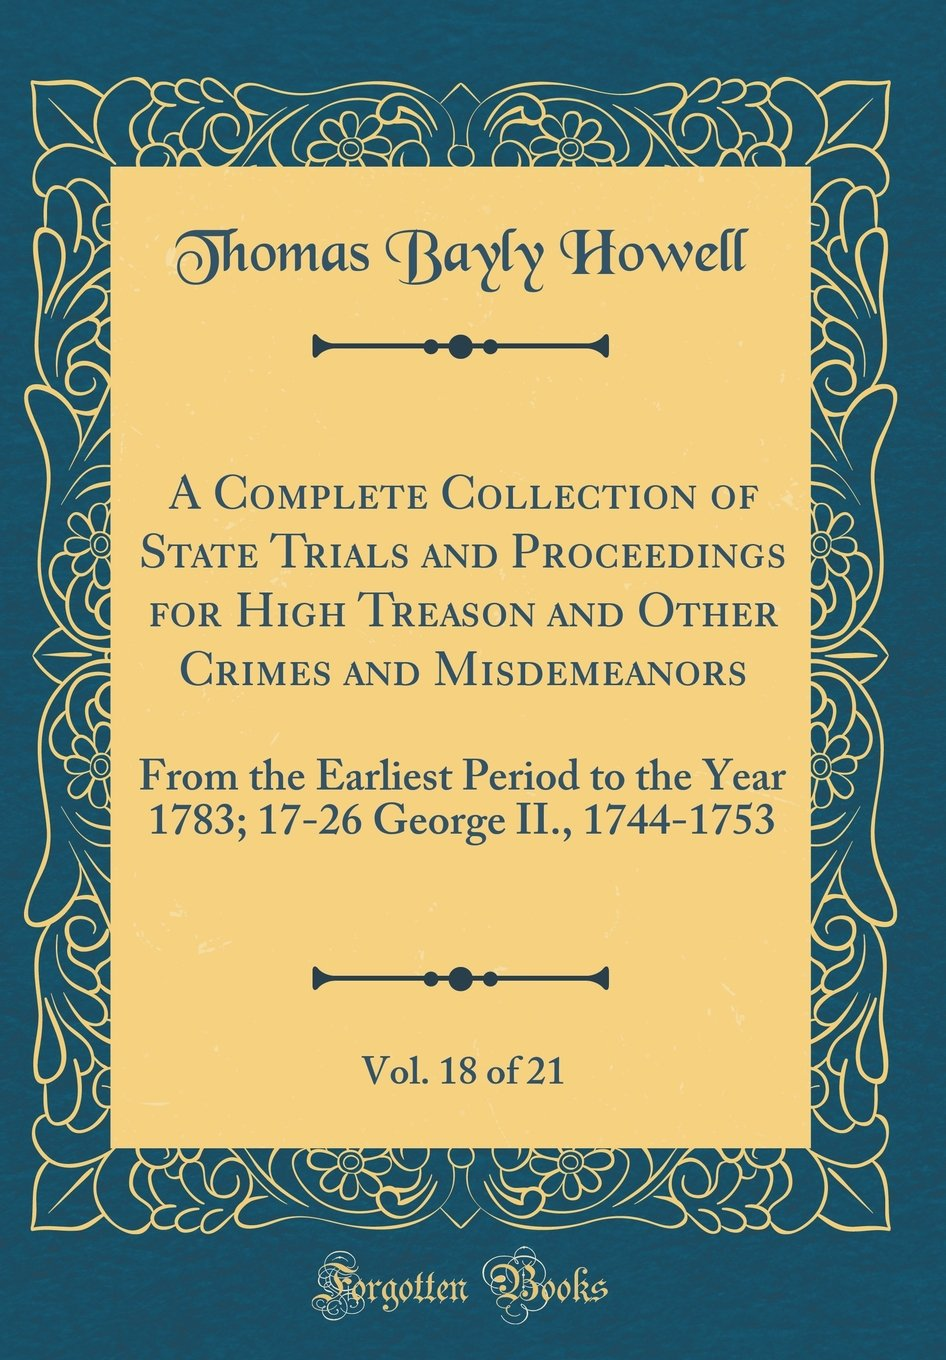 Read Online A Complete Collection of State Trials and Proceedings for High Treason and Other Crimes and Misdemeanors, Vol. 18 of 21: From the Earliest Period to ... 17-26 George II., 1744-1753 (Classic Reprint) PDF